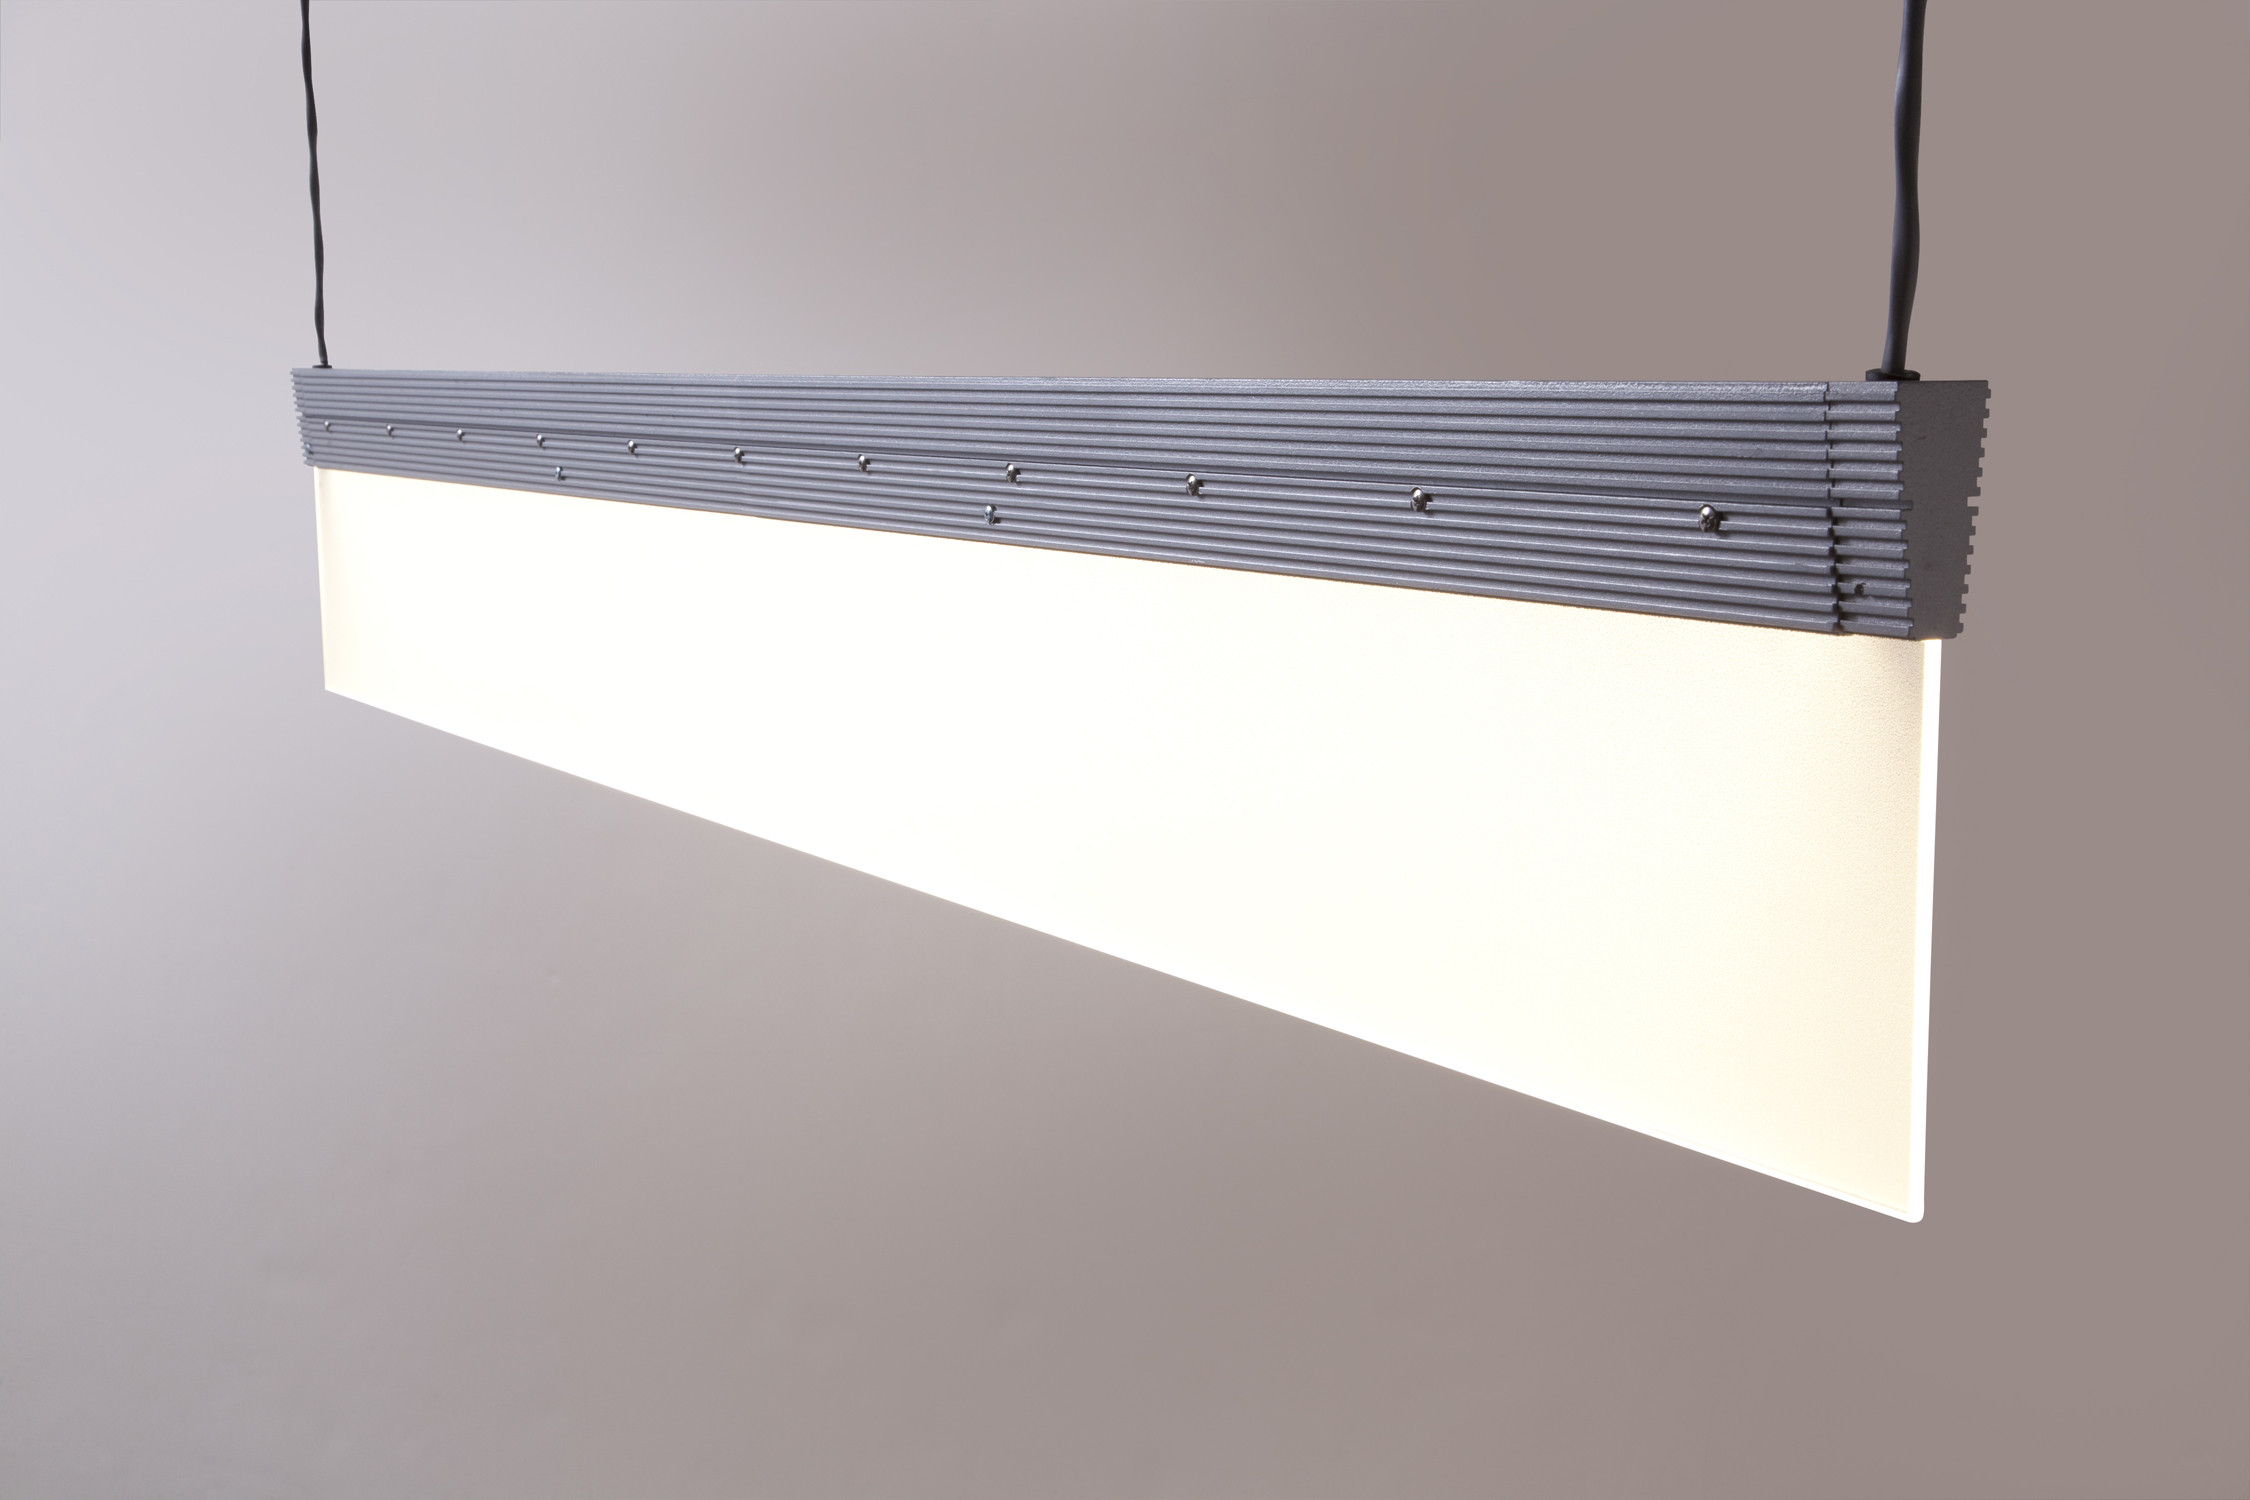 Best ideas about Commercial Led Lighting . Save or Pin Led Light Design Exciting mercial Led Lighting Now.